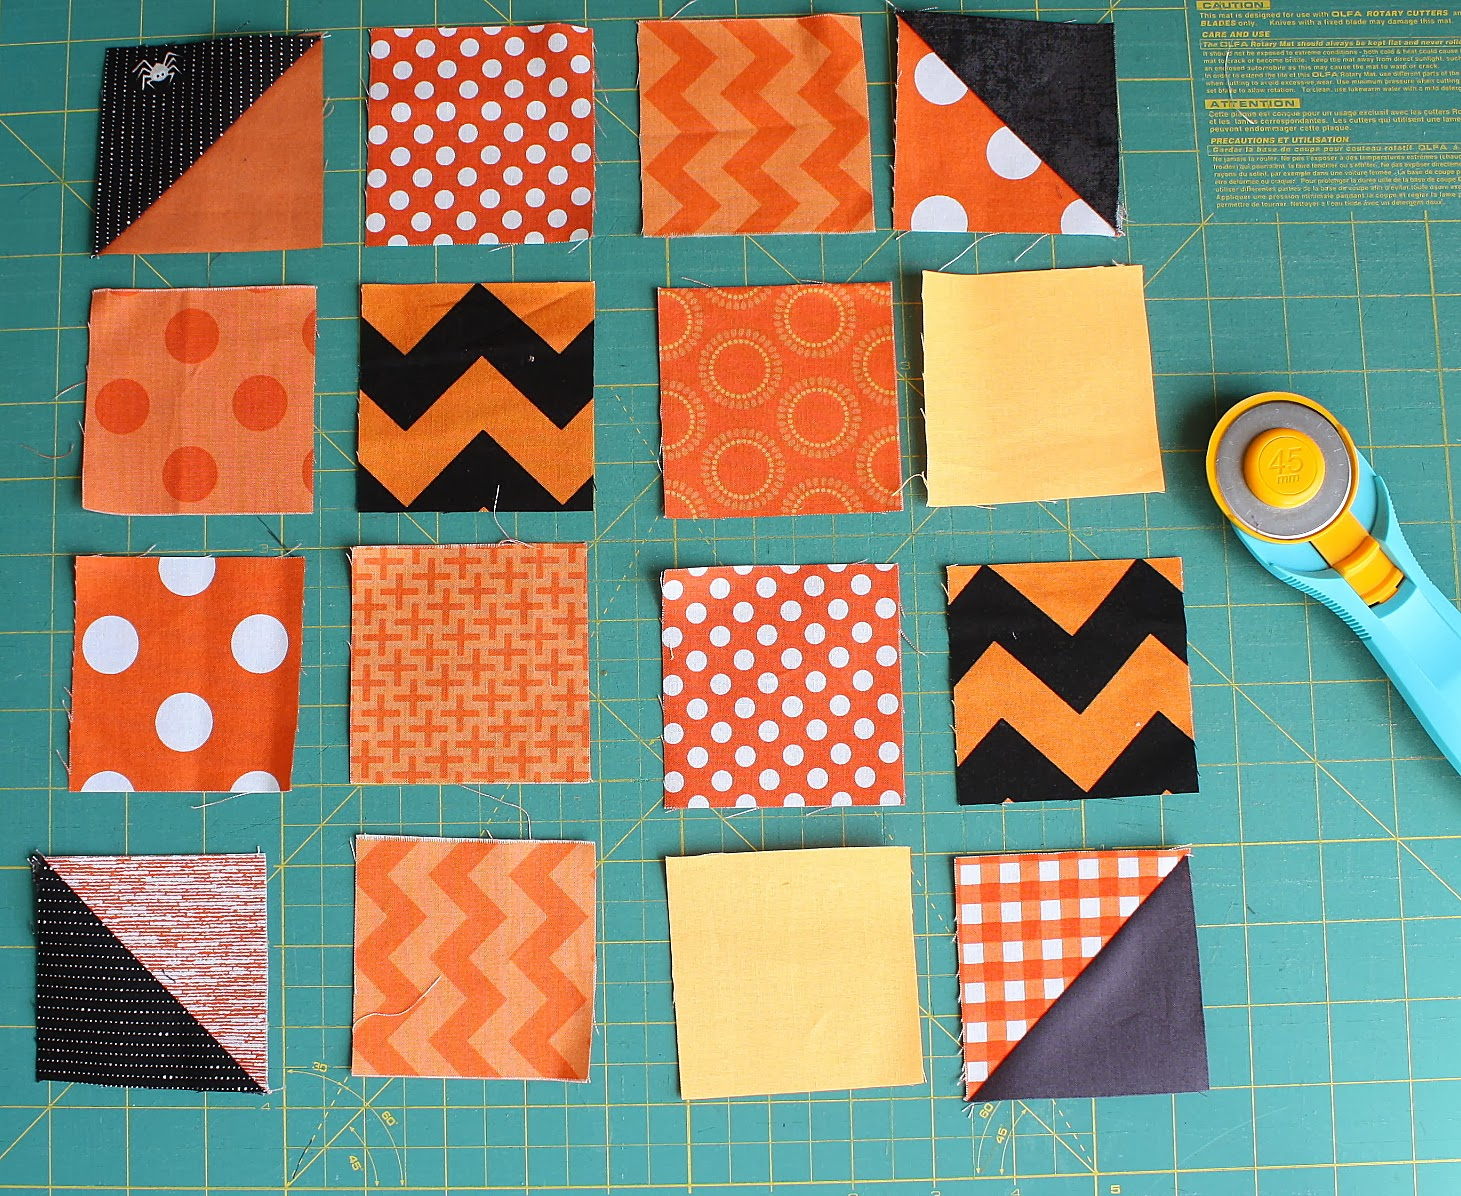 Patchwork Pumpkin pillow and table runner tutorial : pumpkin quilt patterns - Adamdwight.com